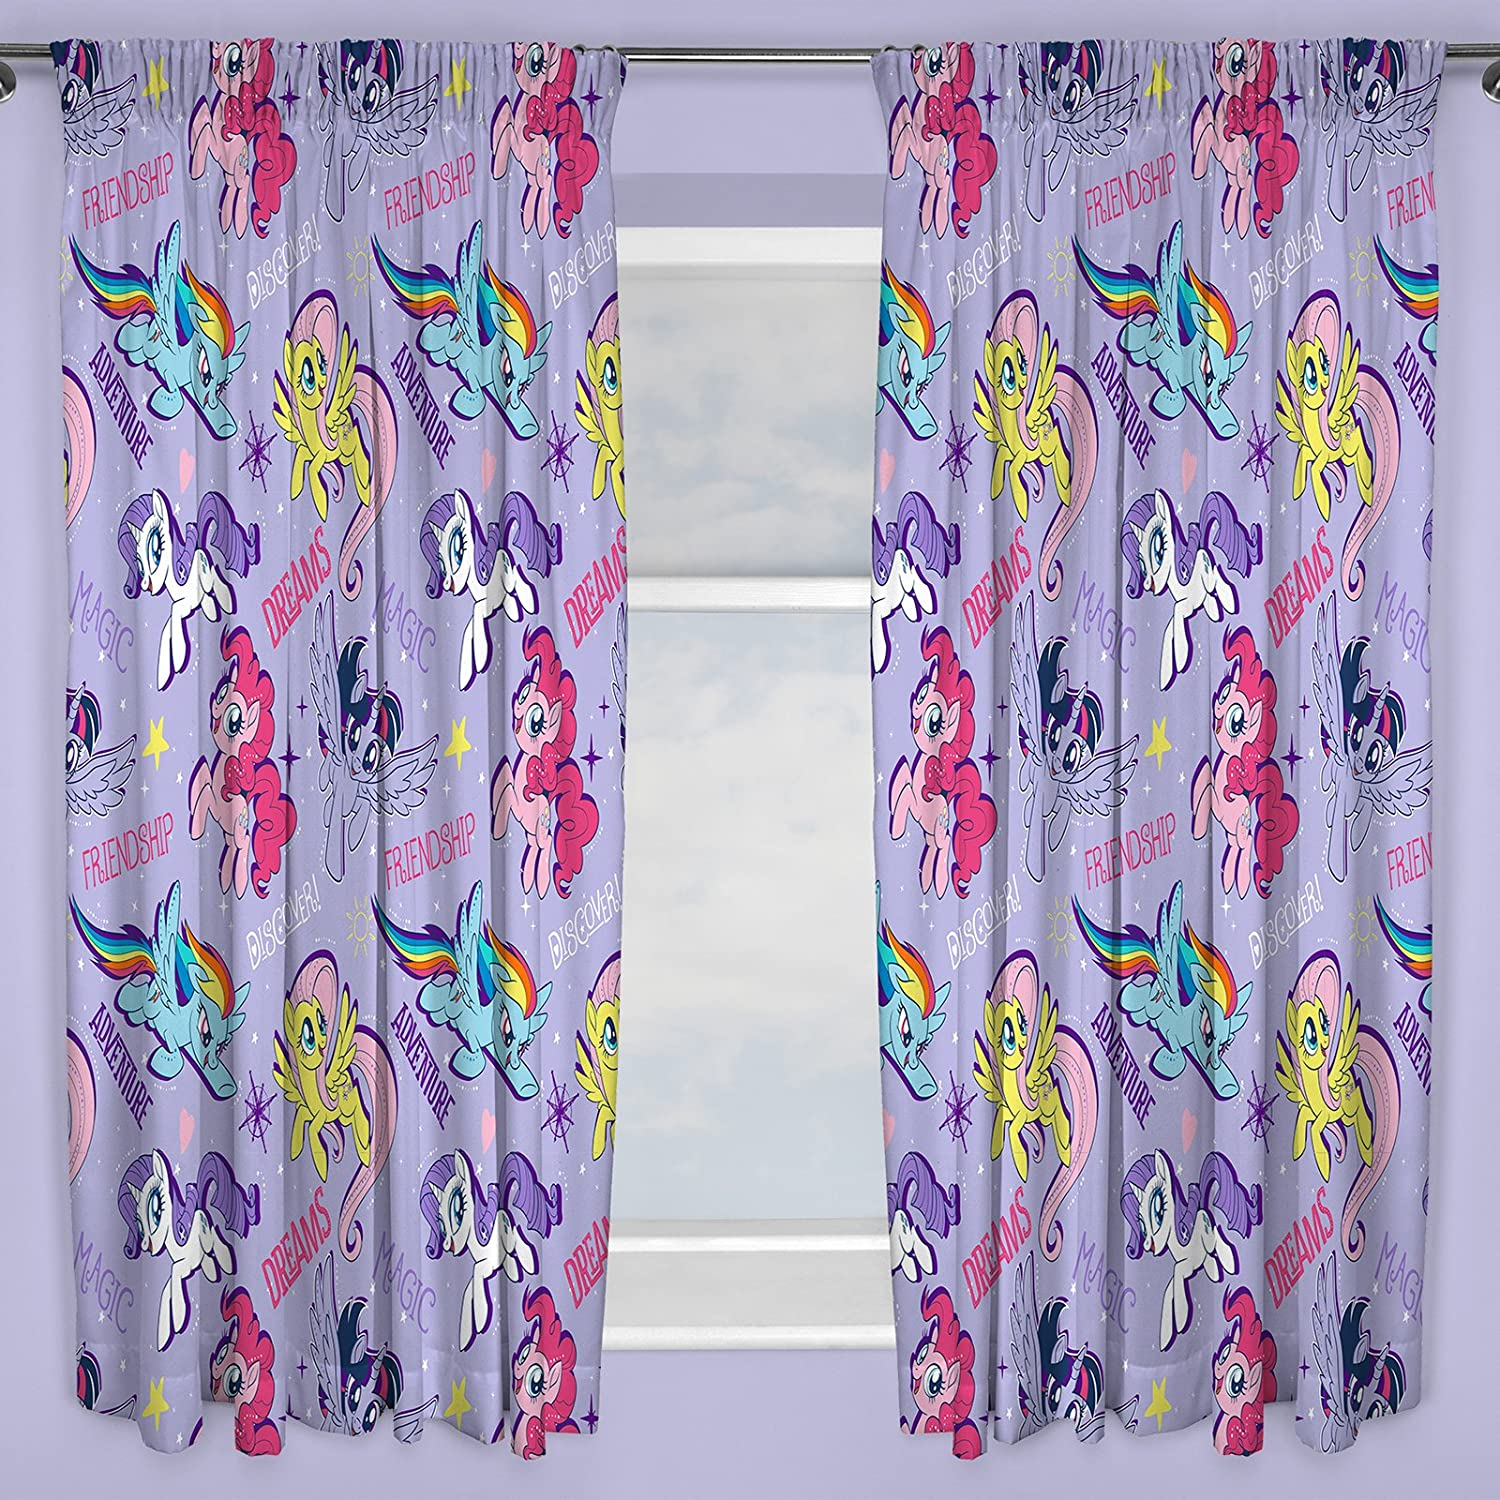 My Little Pony Movie Curtains 54 Drop Character World MLMADV54001UK